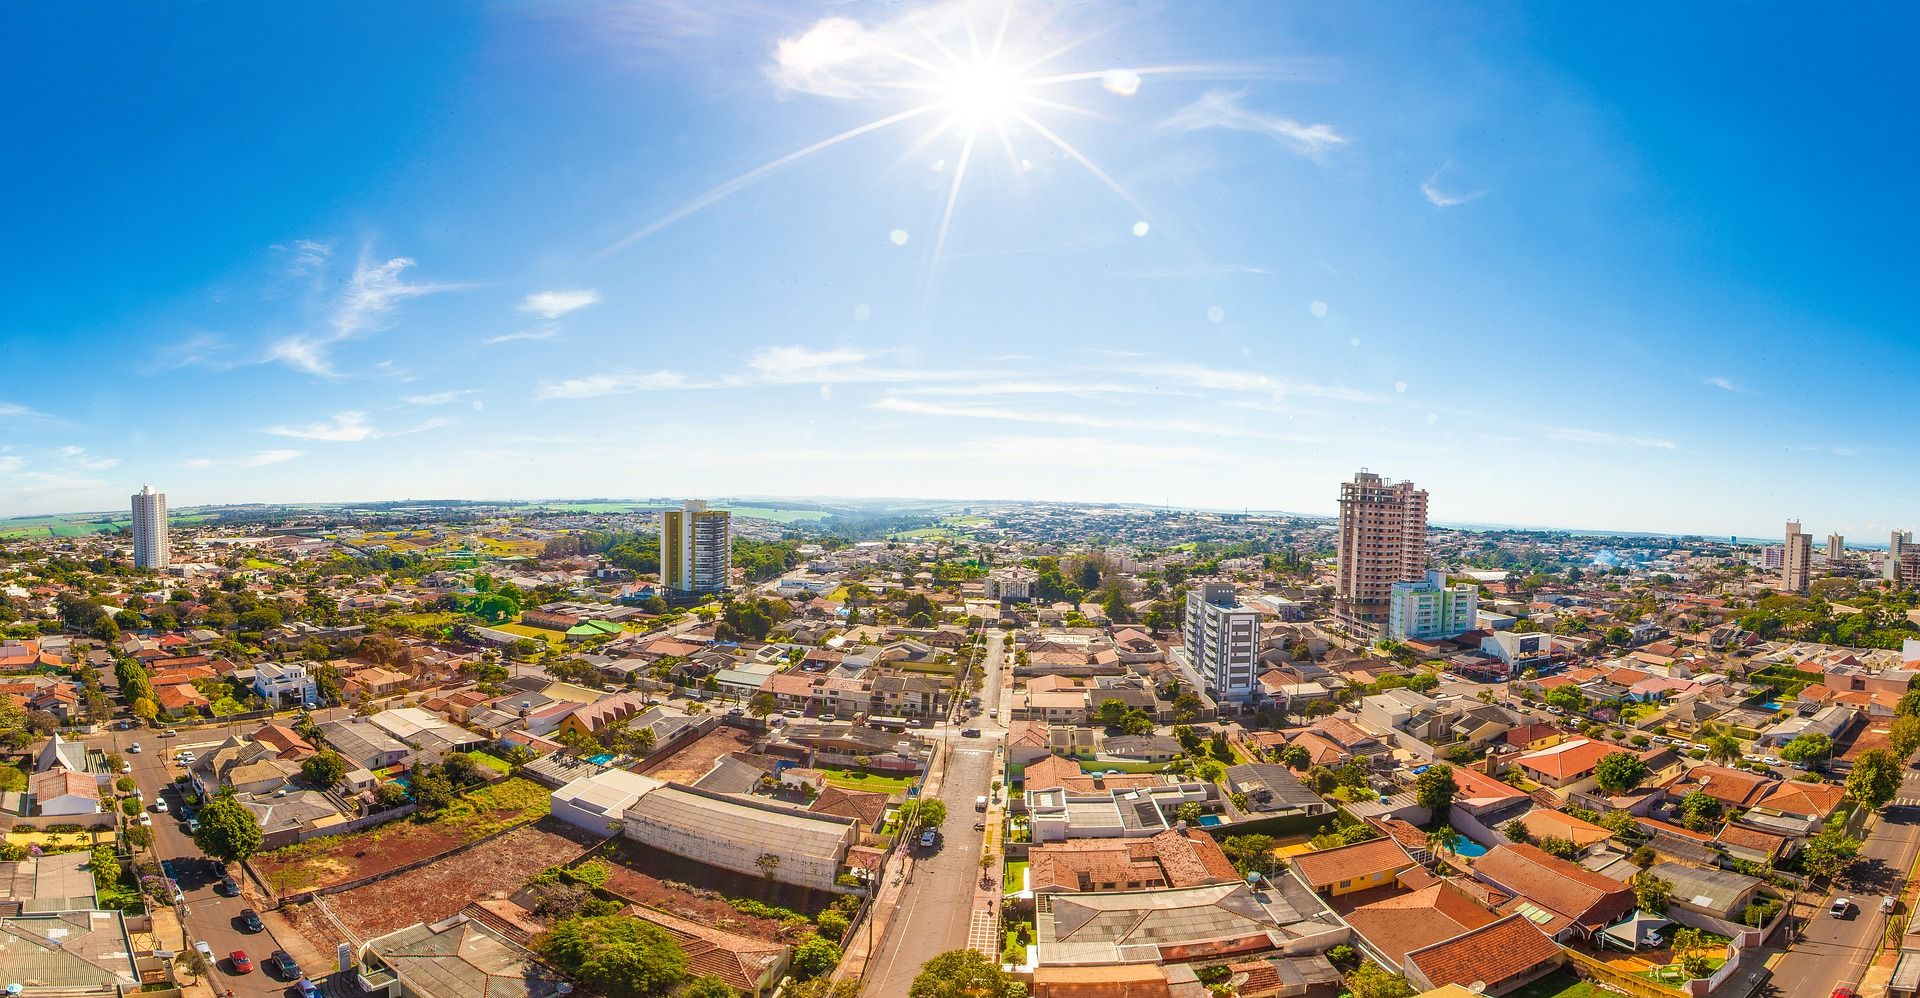 Photo of daytime cityscape view over Arapongas, Brazil.